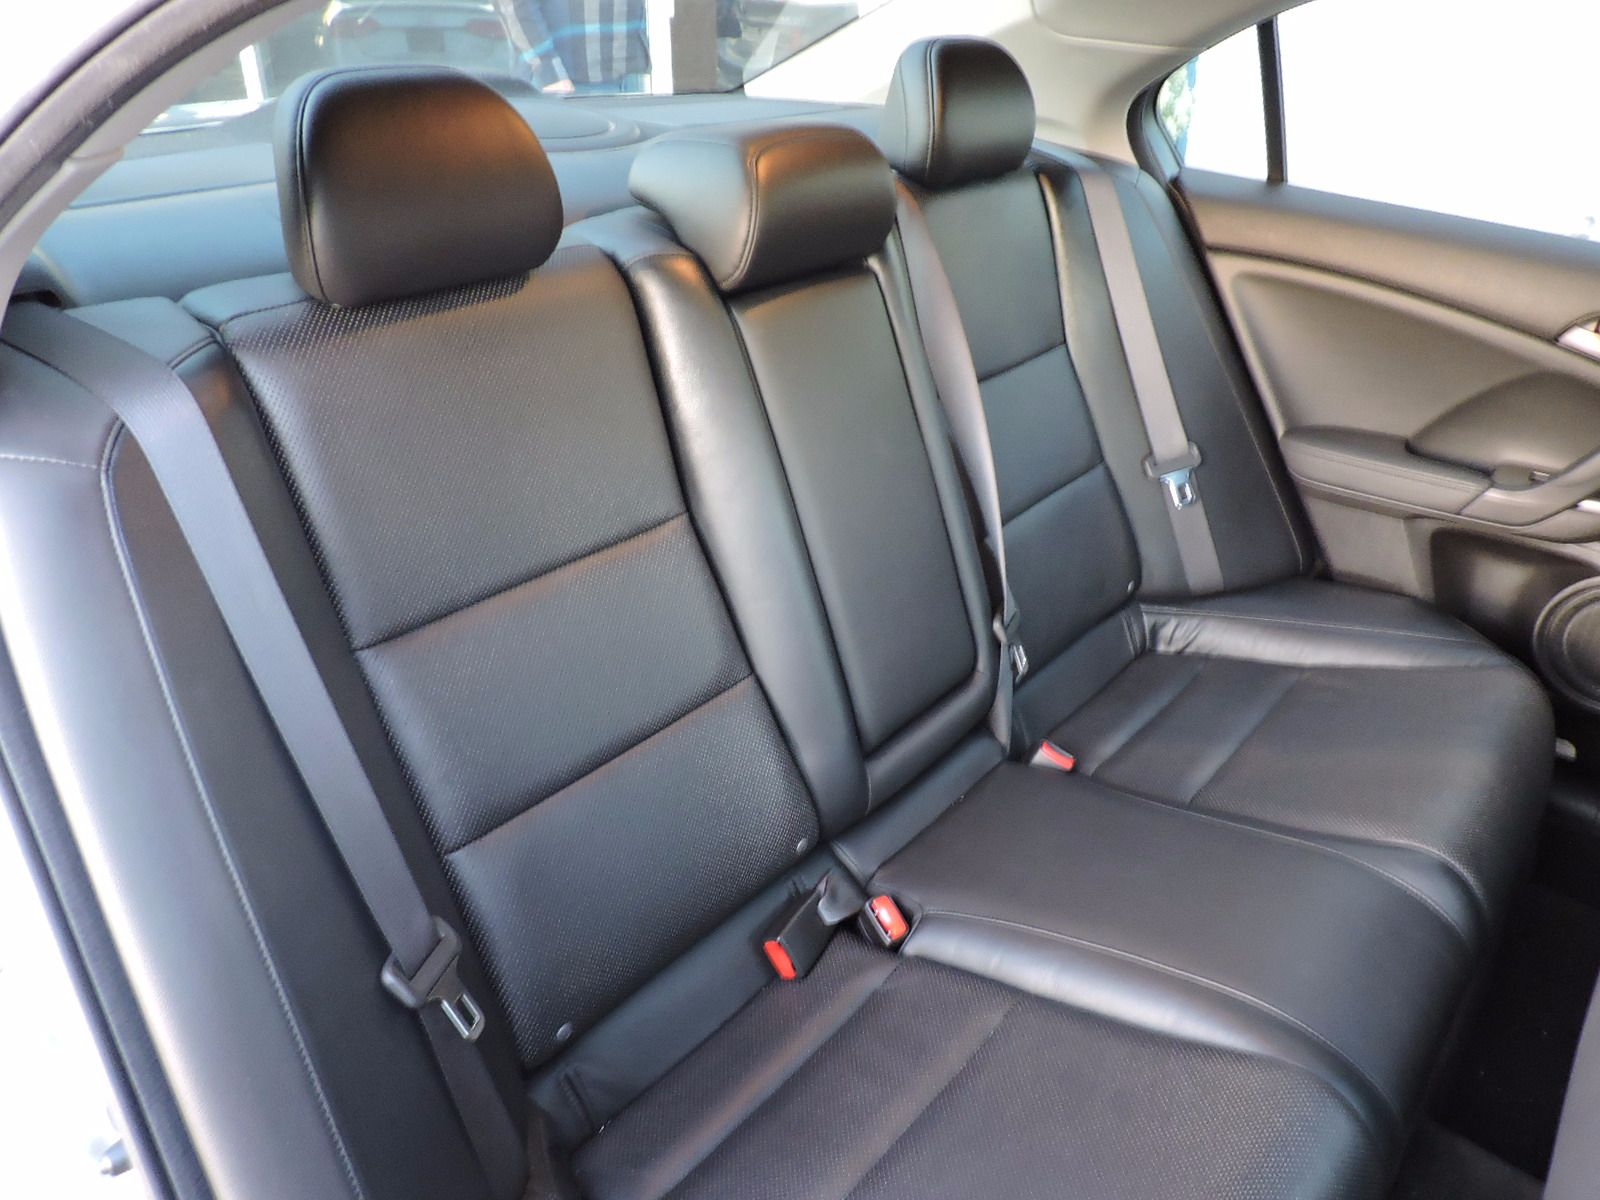 2009 Acura TSX - Technology Package - Navigation